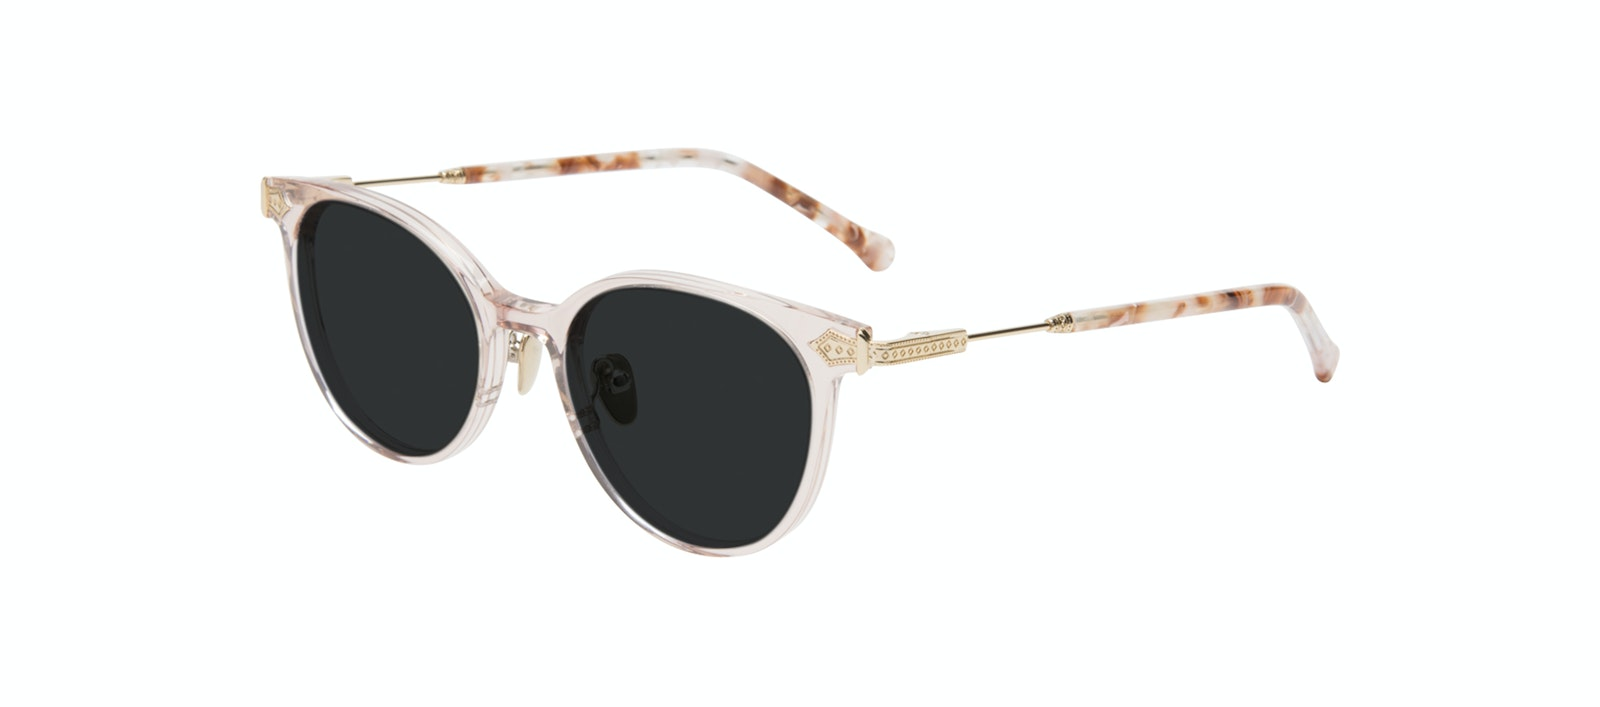 Affordable Fashion Glasses Round Sunglasses Women Gem Pink Quartz Tilt